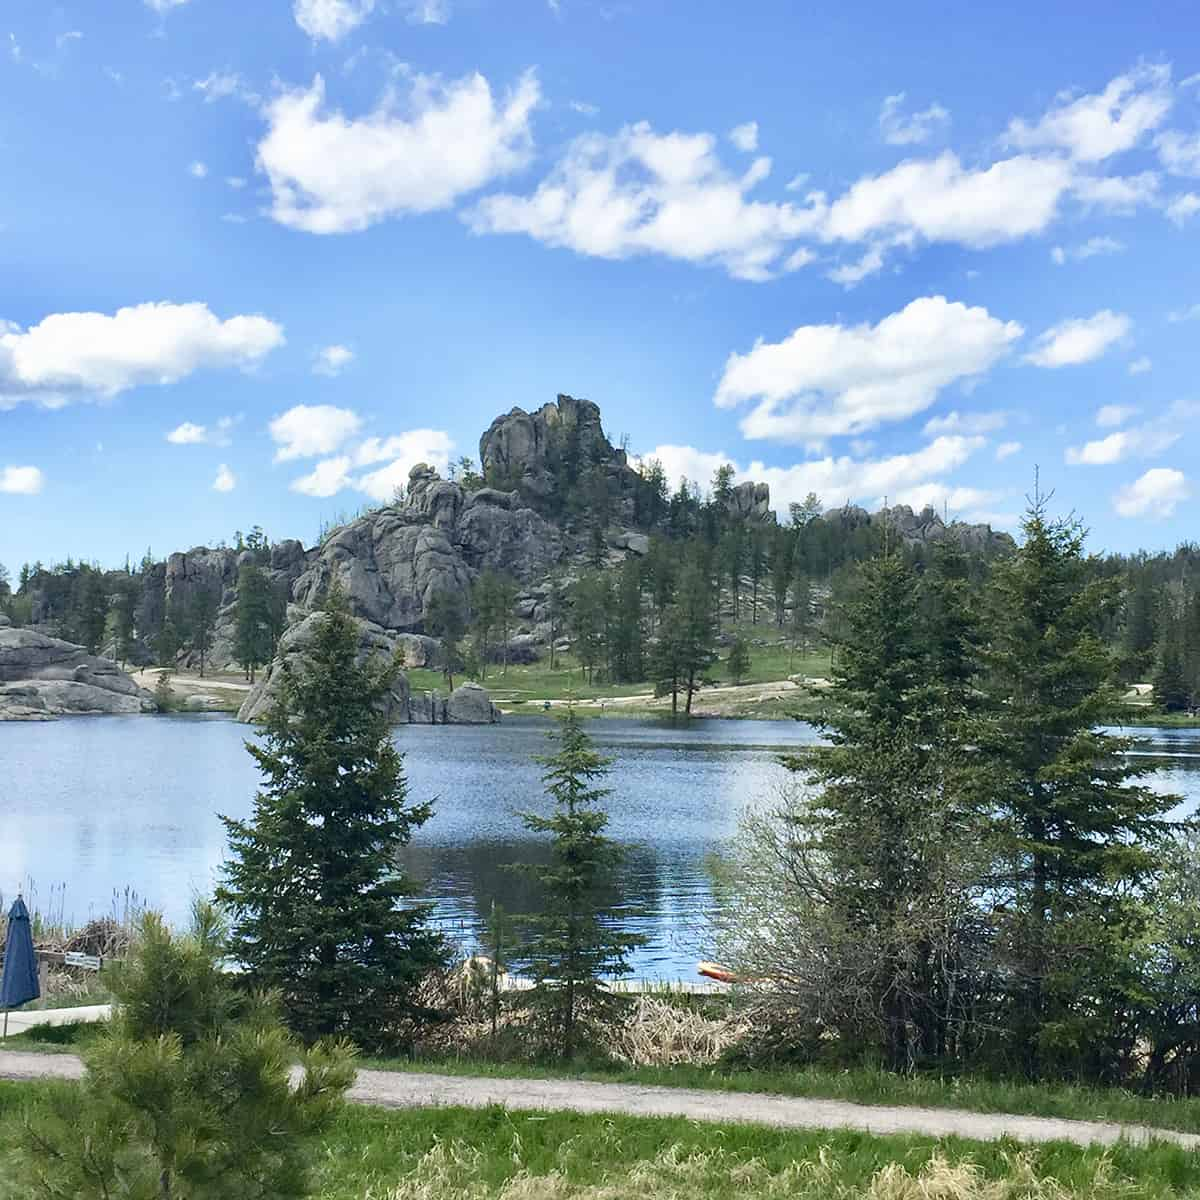 Square feature image of Custer State Park Lake Sylvan. Craggy rocky outcrops overlook a beautiful lake.